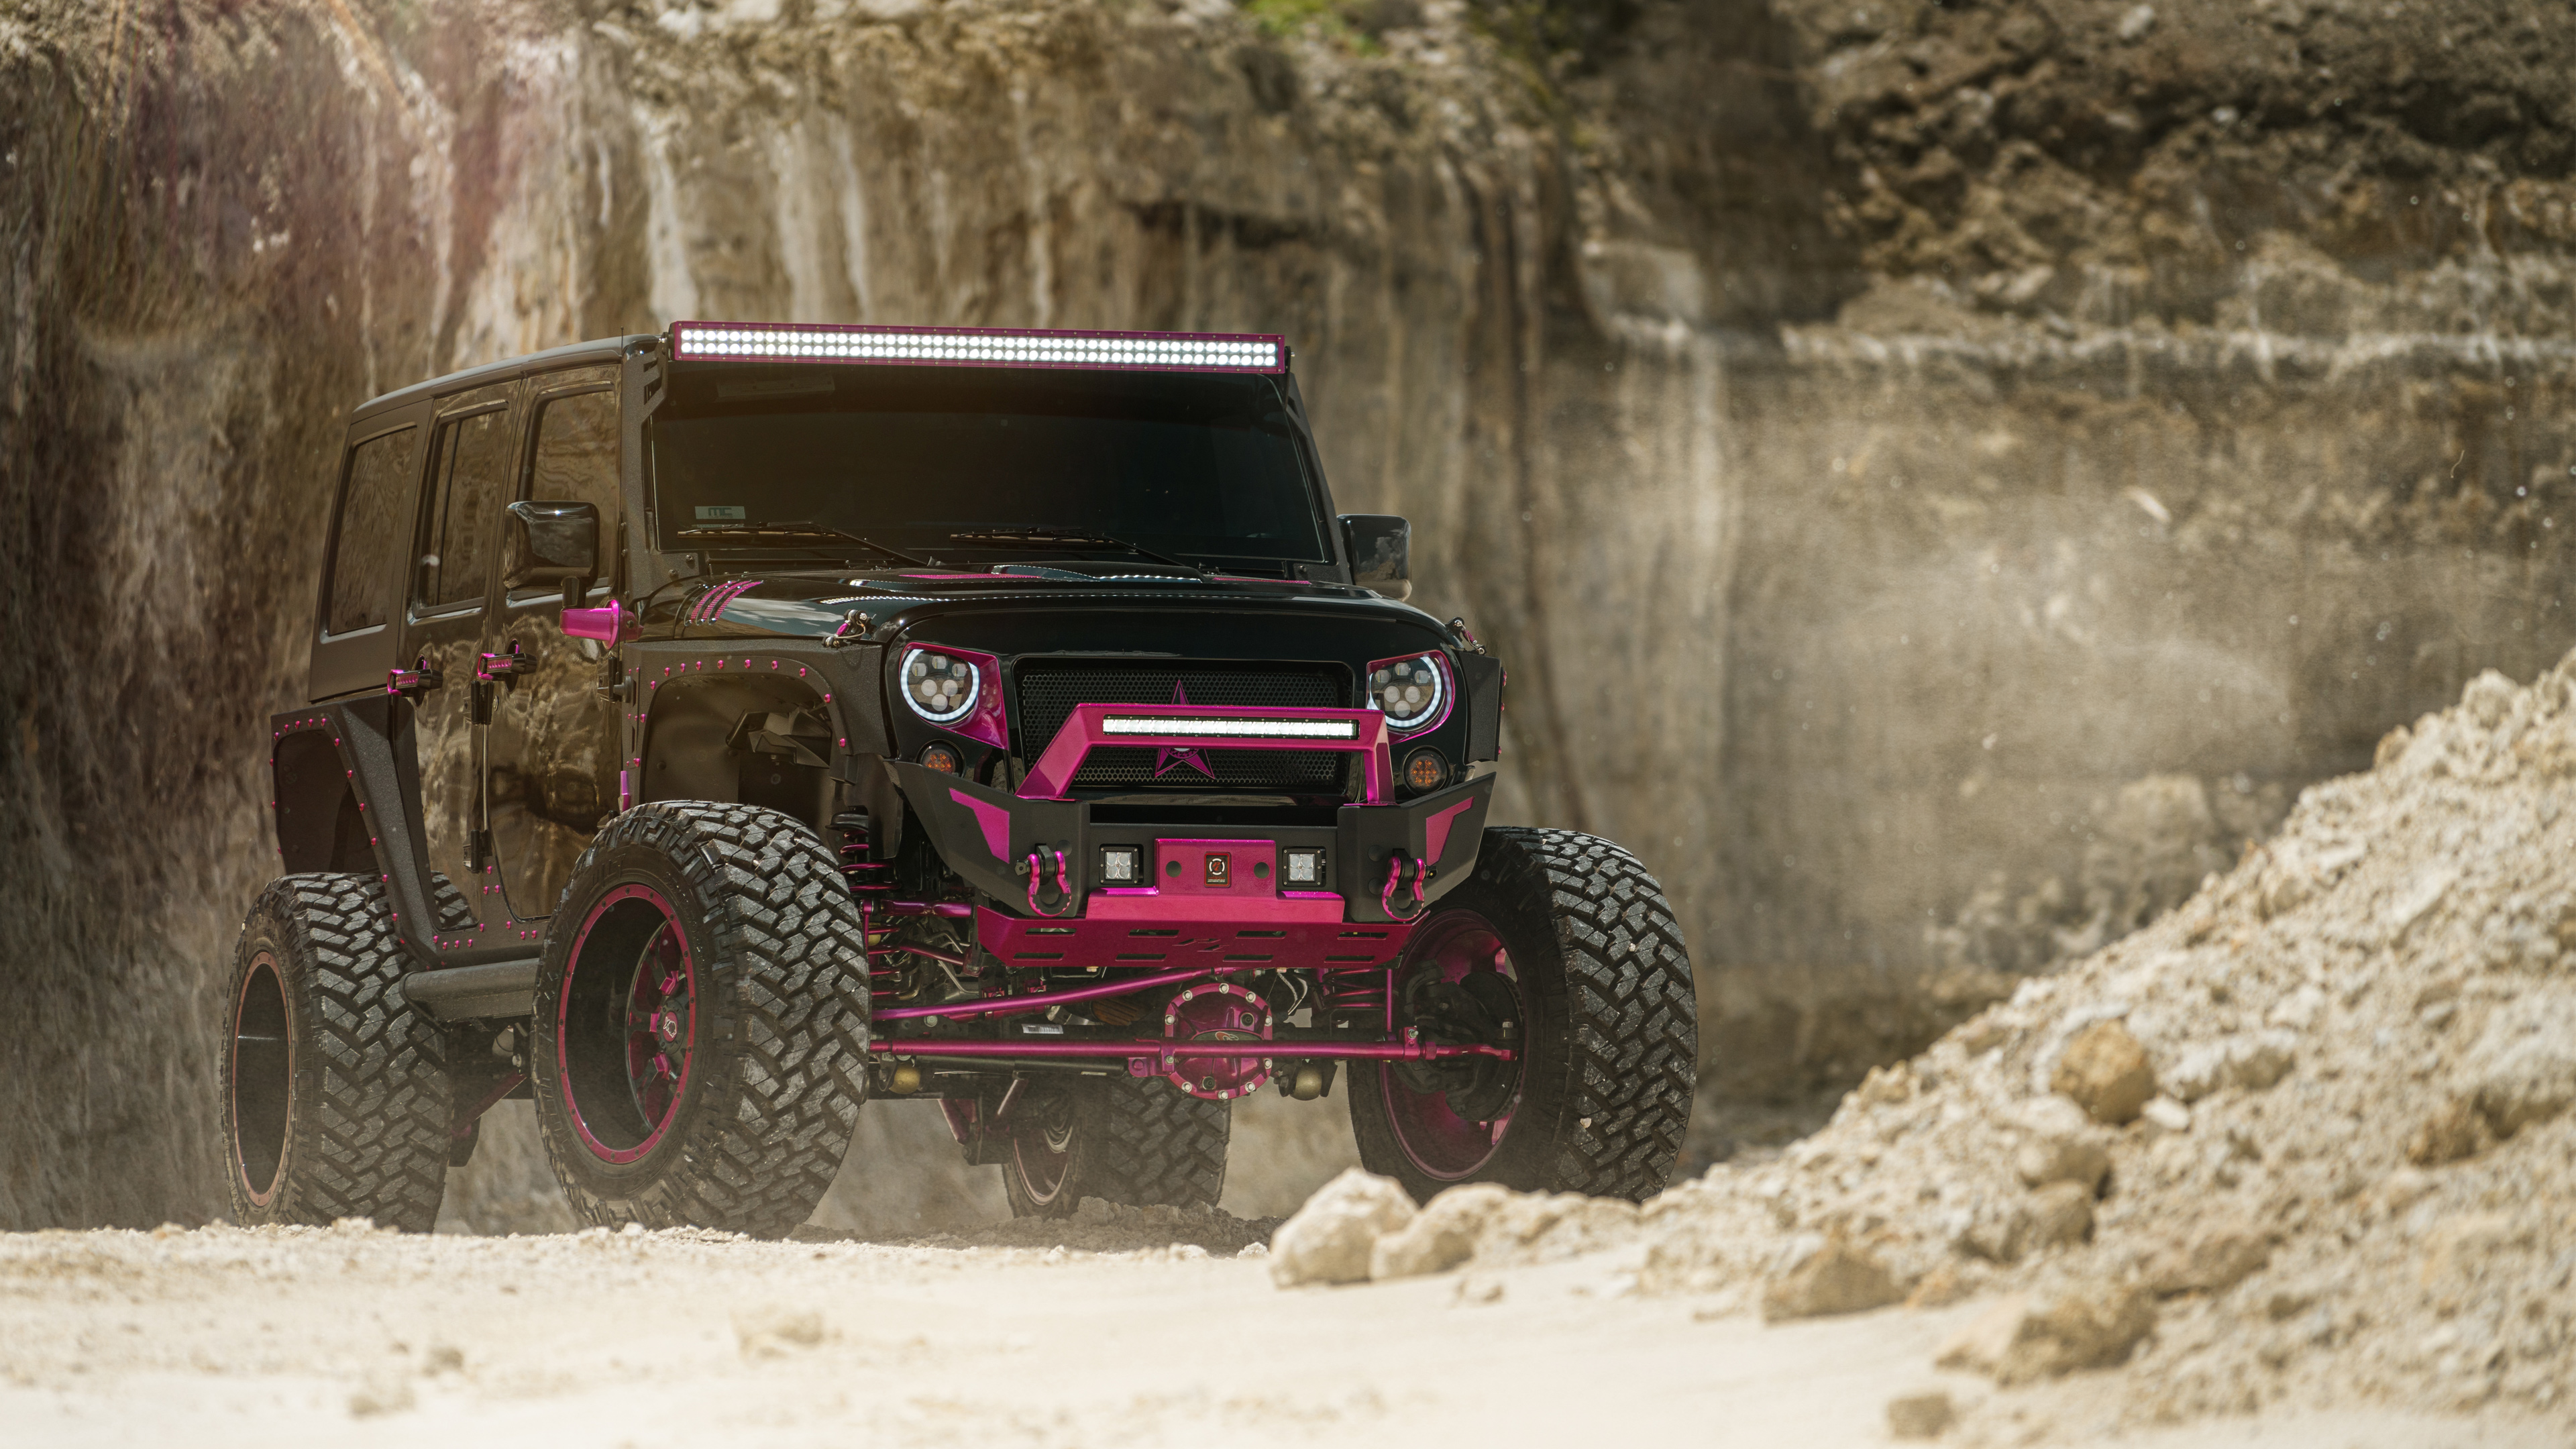 mc fuel ladies jeep wallpaper | hd car wallpapers | id #6887